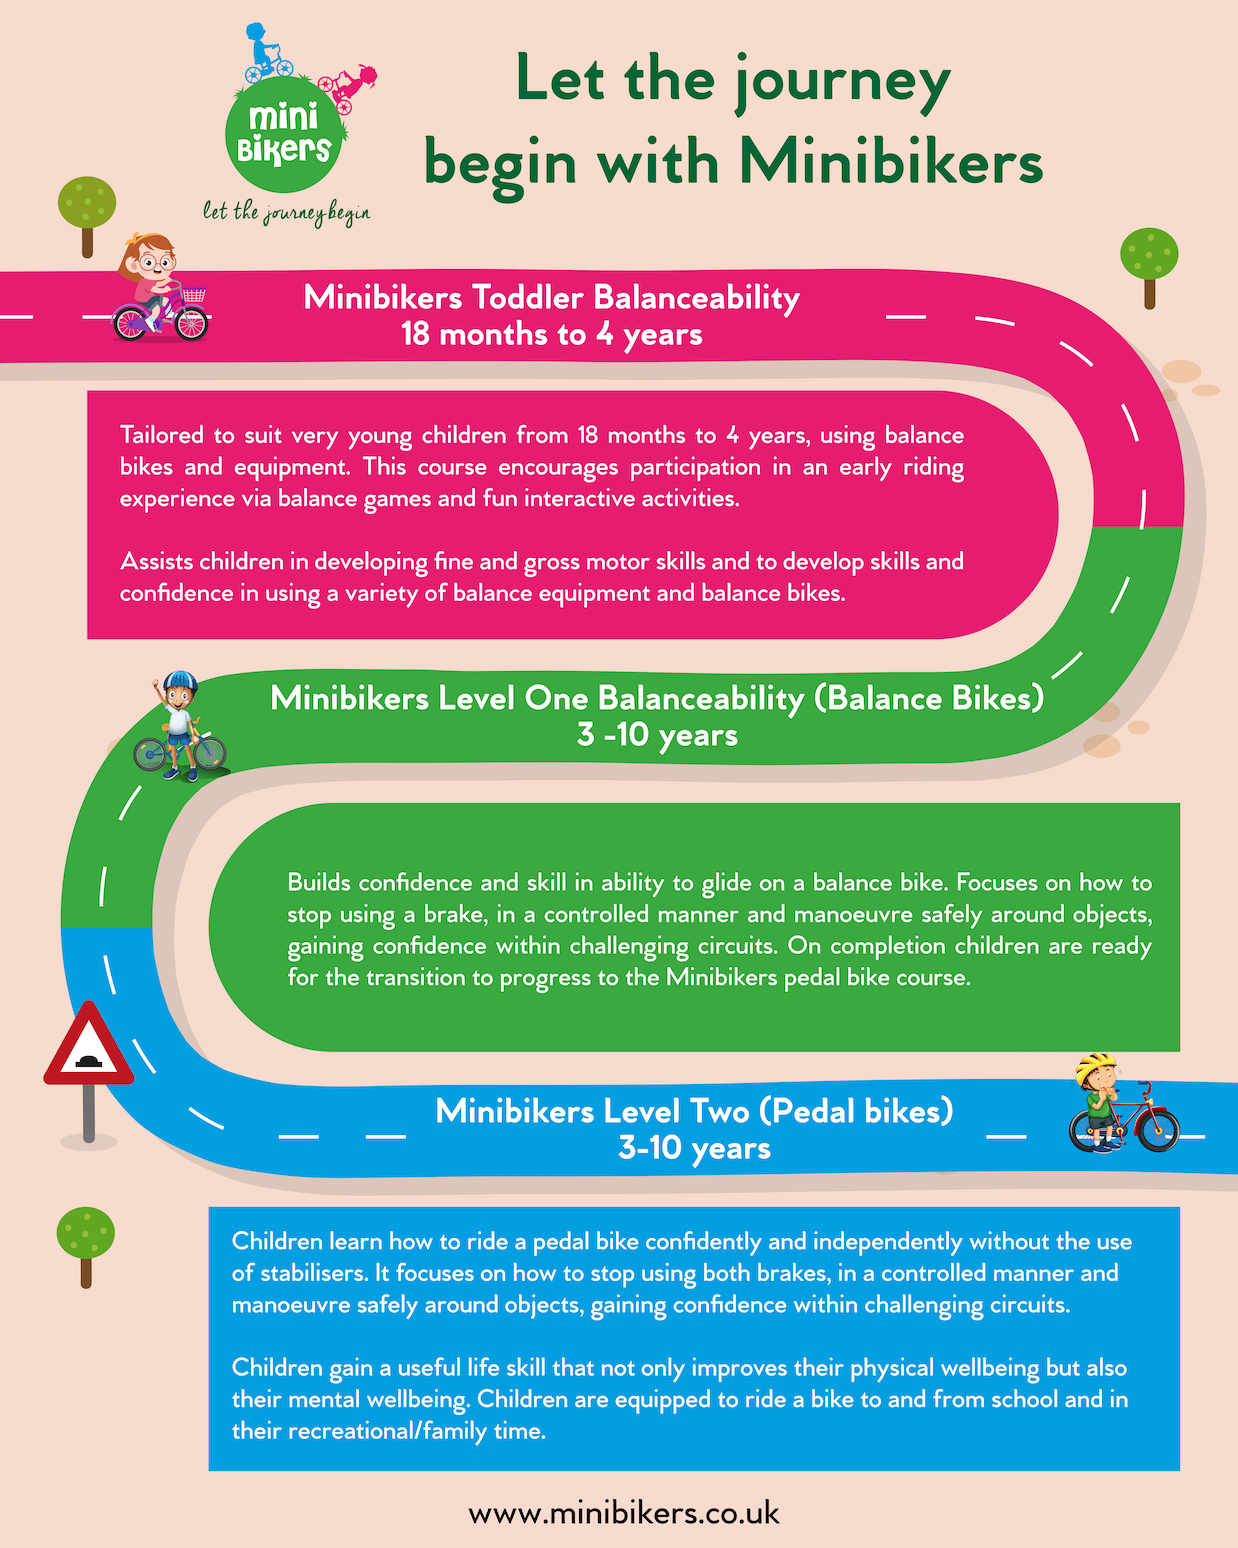 infographic from Minibikers balance bike classes showing the 3 levels of their learn to ride courses